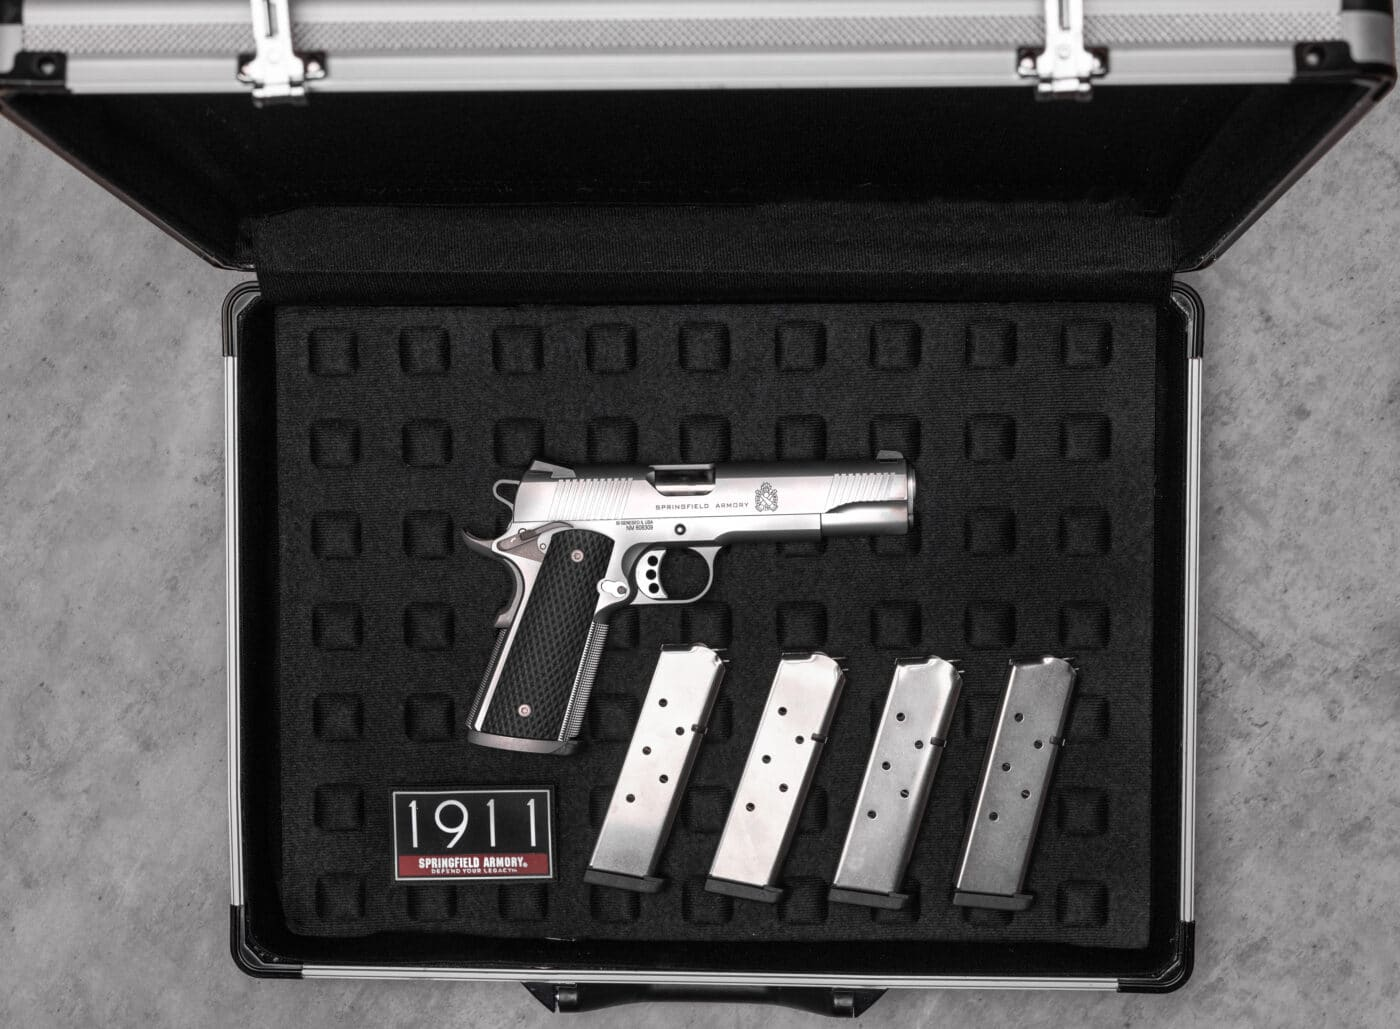 Stainless steel 1911 TRP from Springfield in a case with magazines